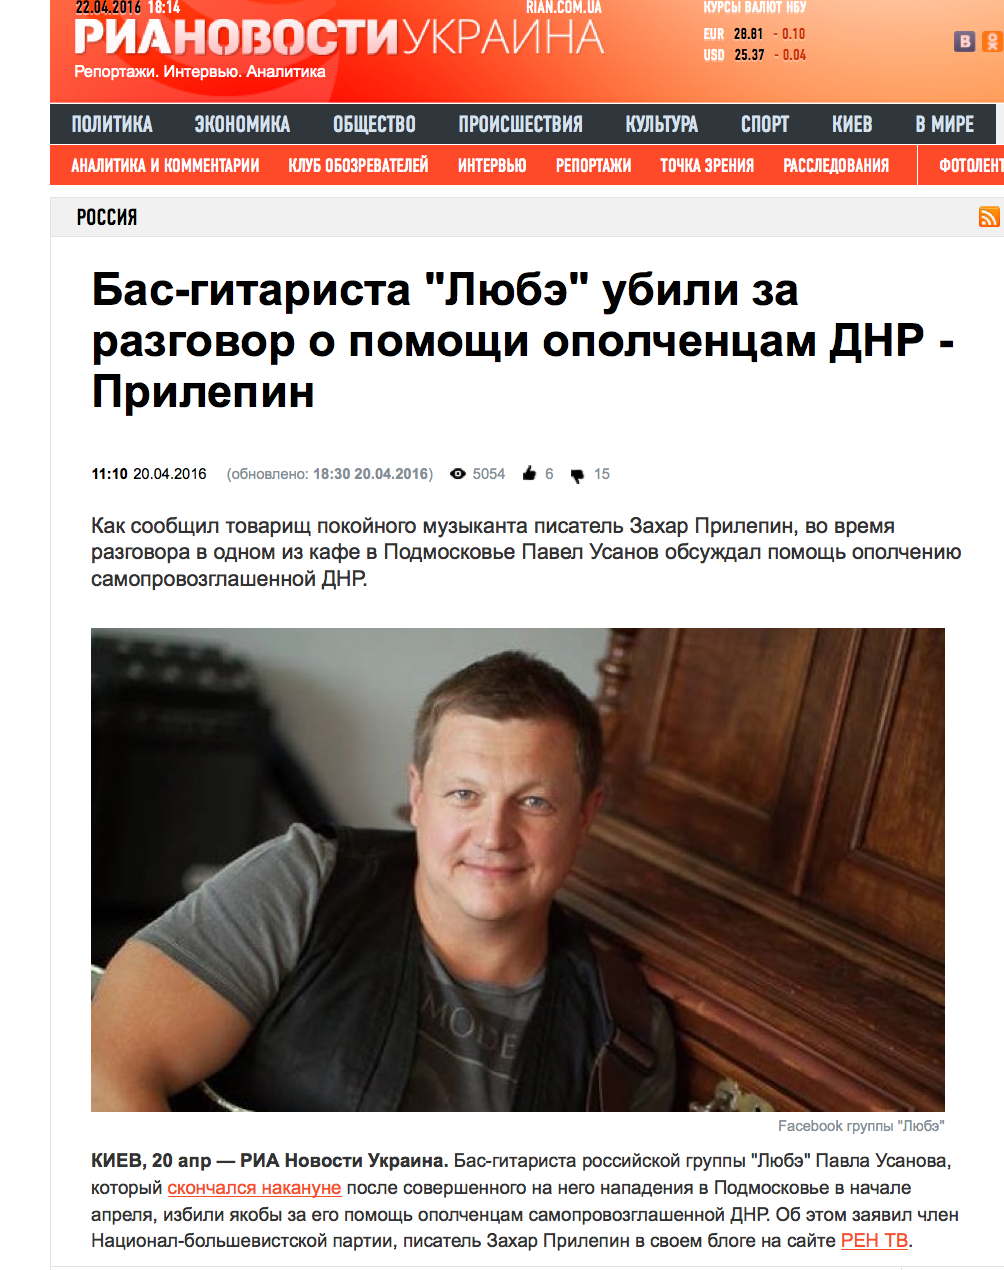 On the web, the death of Pavel Grachev was ambiguous 24.09.2012 45